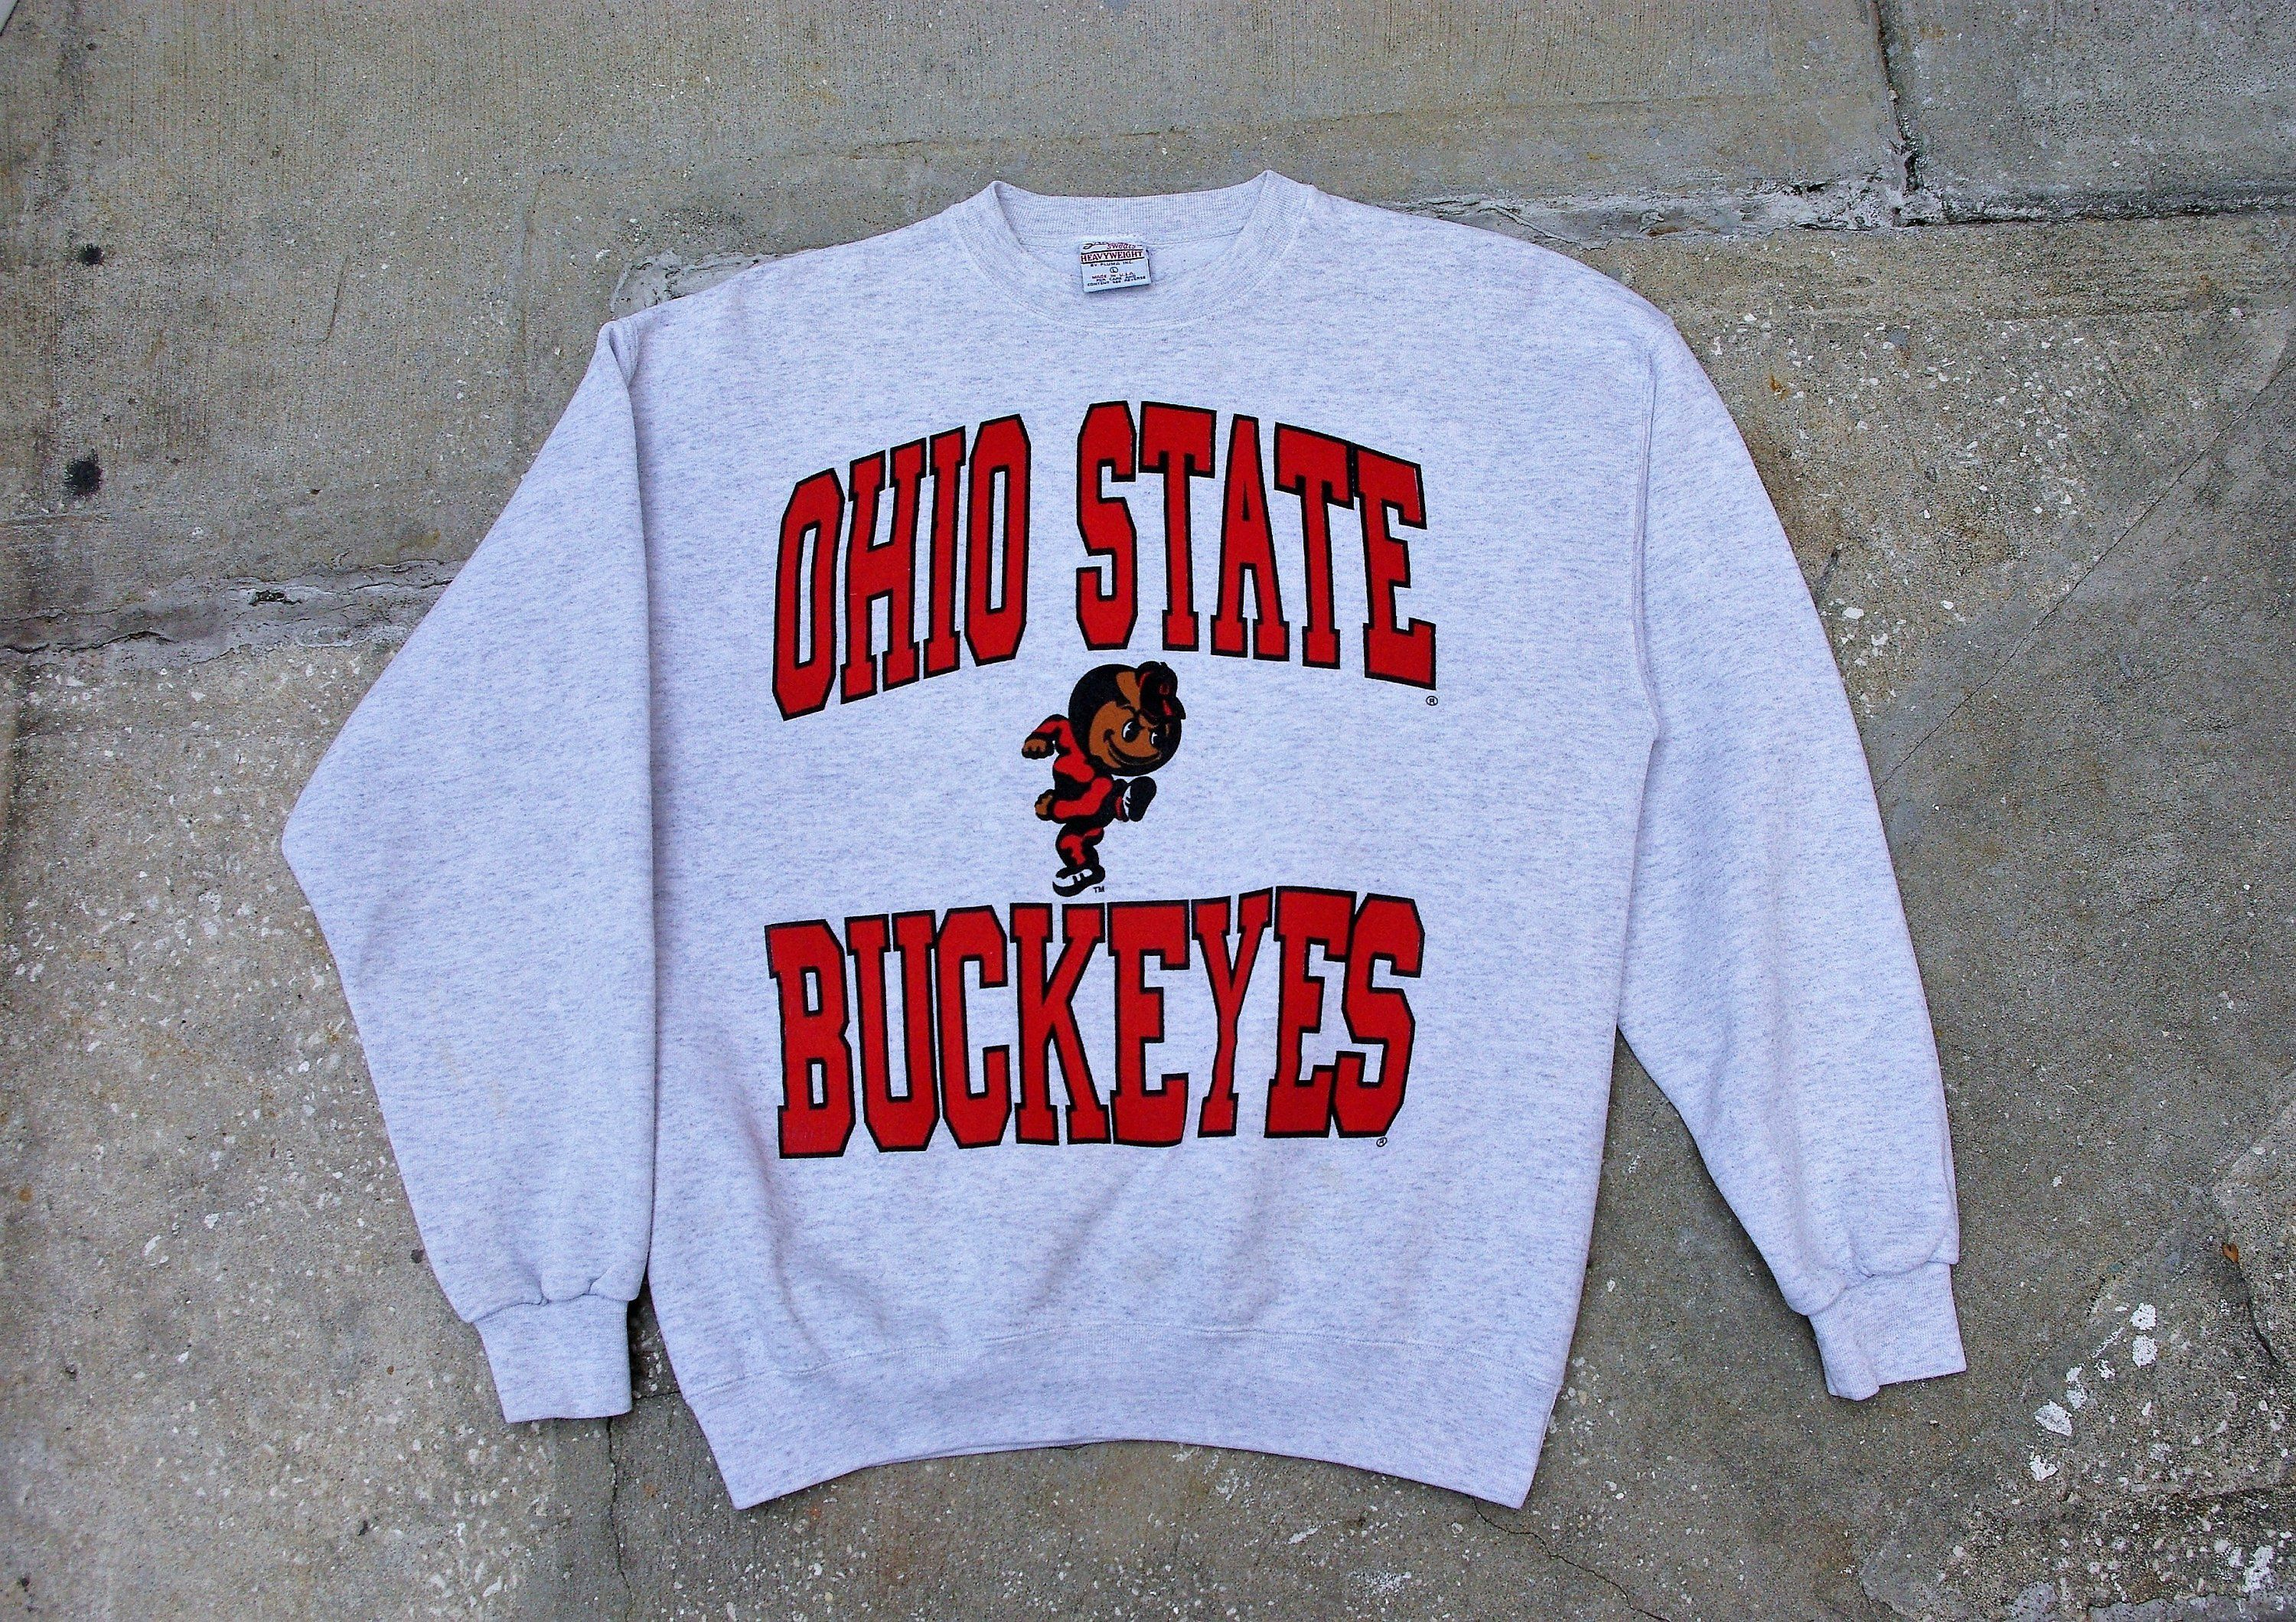 Vintage Ohio State Buckeyes Sweatshirt Gray Lg Spellout Graphic Mascot Unisex Skater-Hipster-Athletic Street Wear / Ships FREE in US #ohiostatebuckeyes